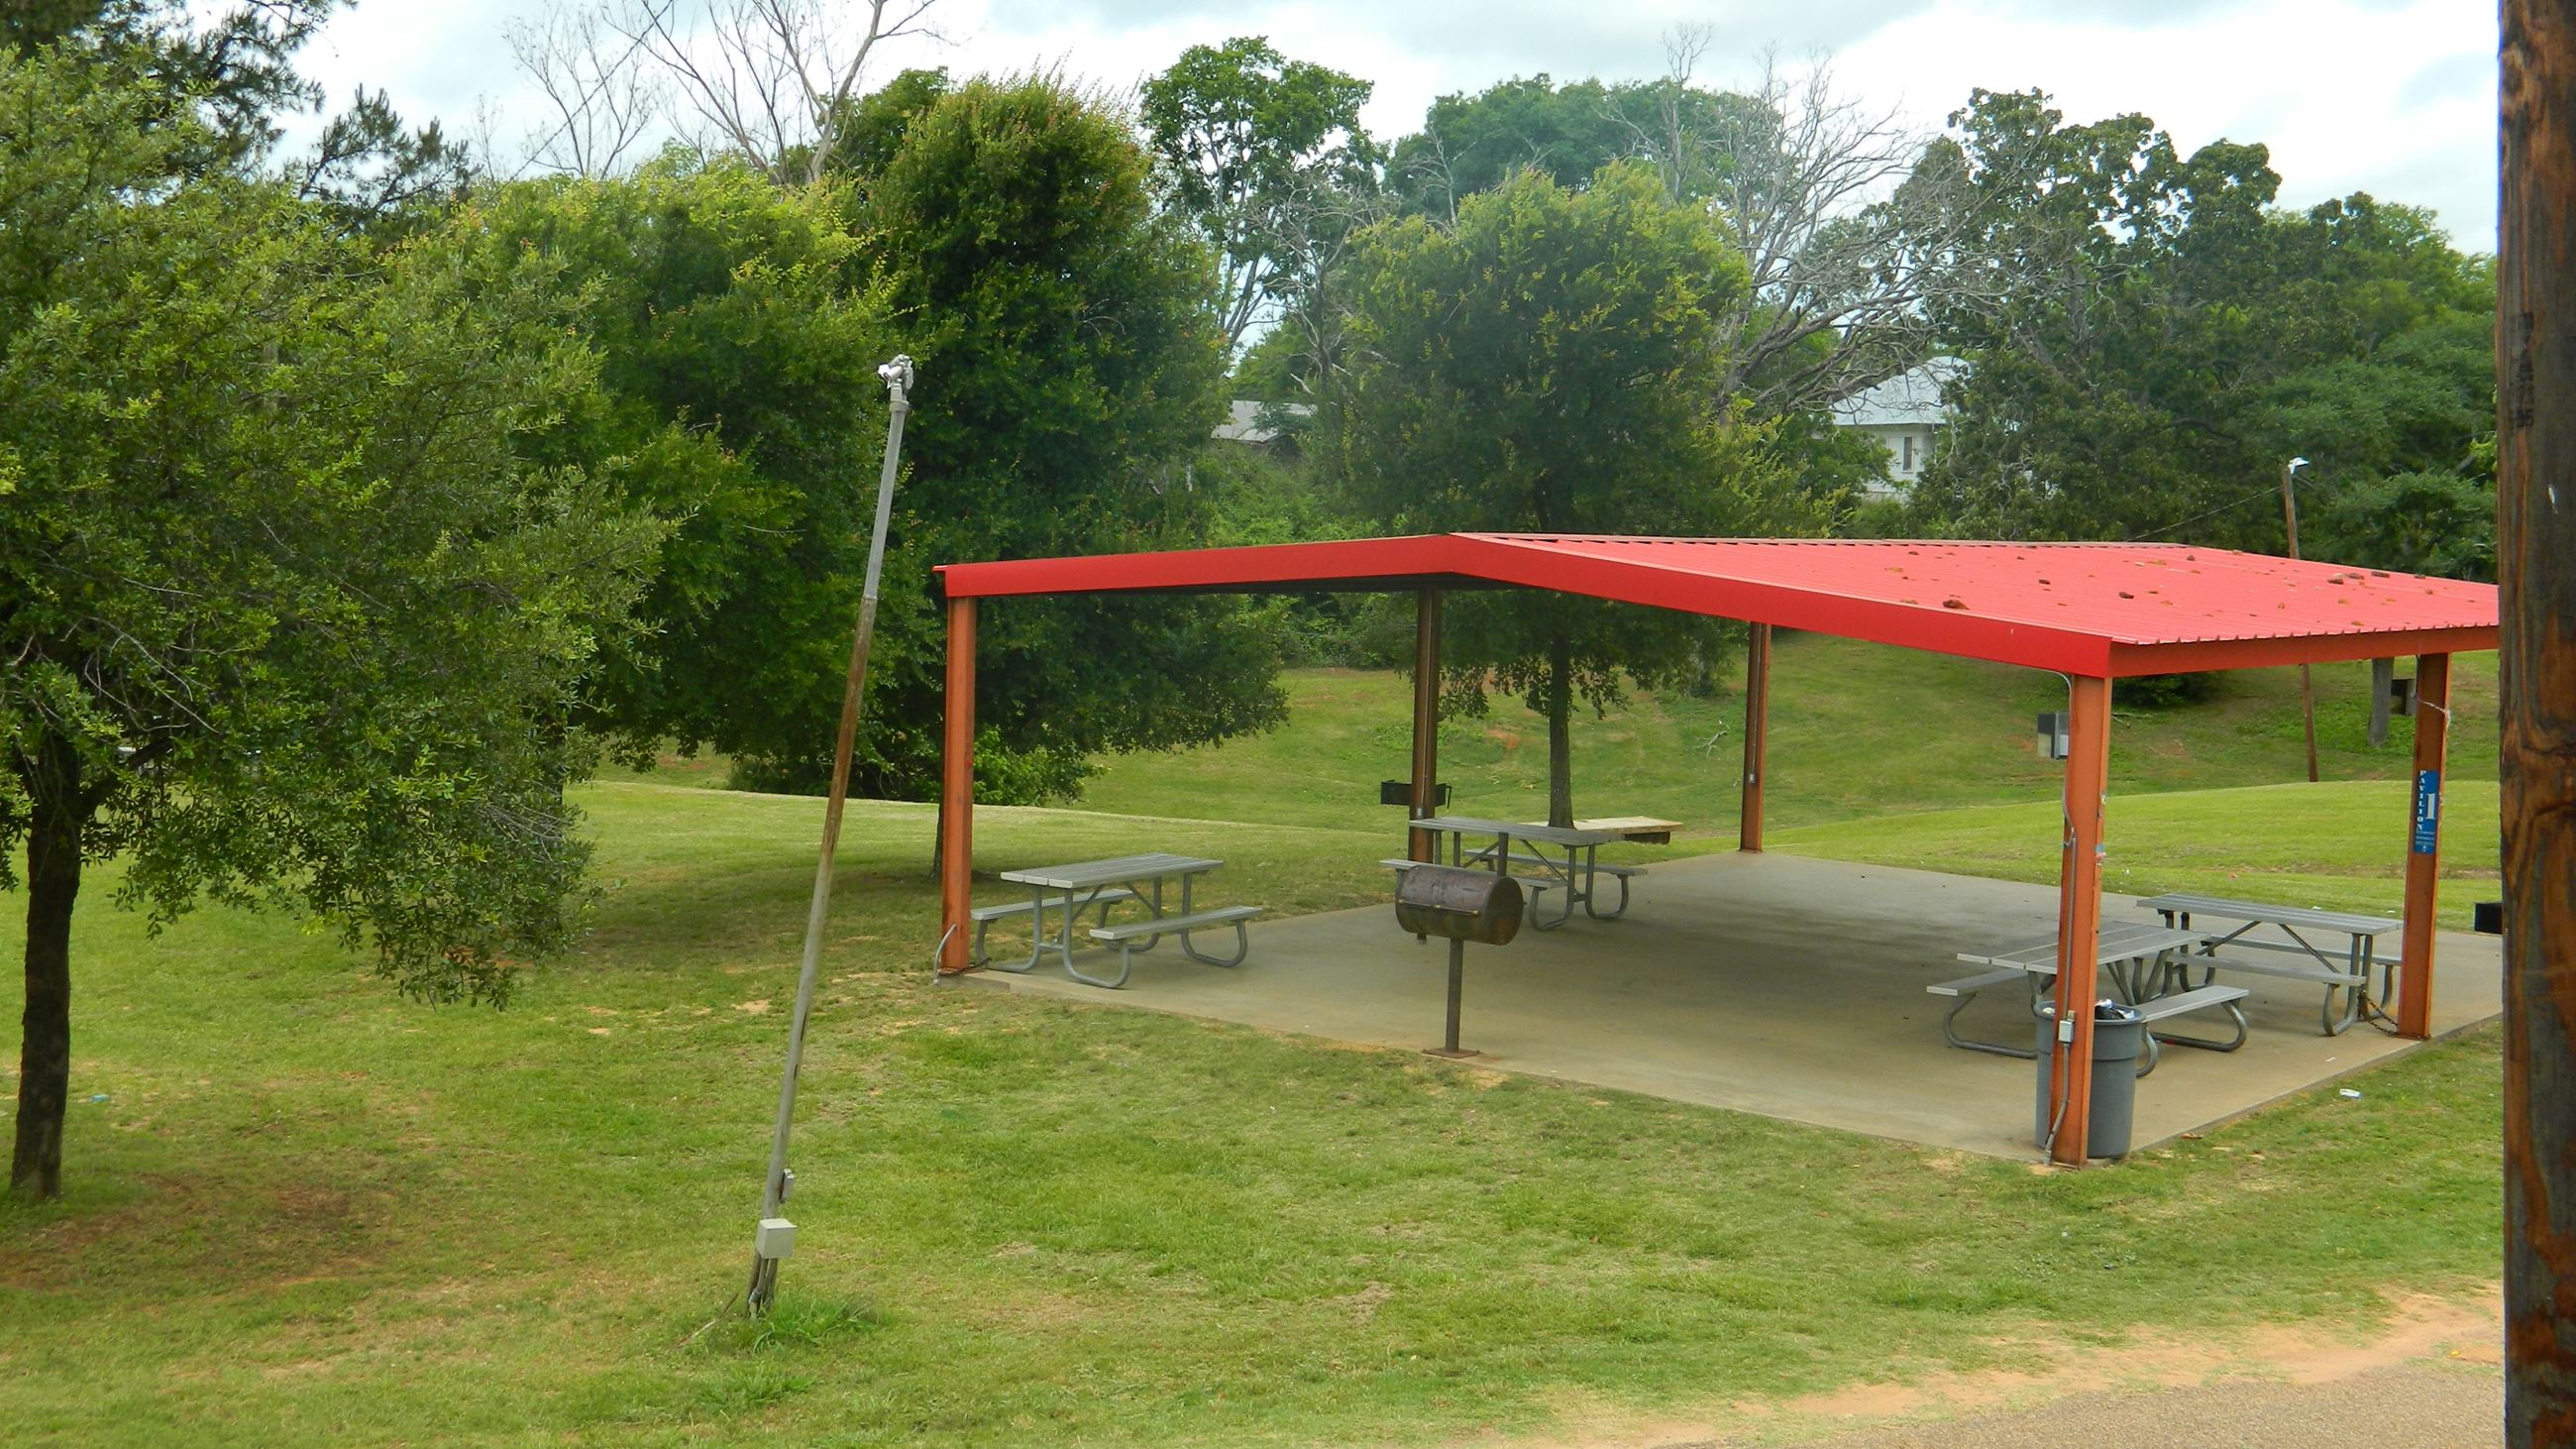 A Pavilion with Benches at Lincoln Park